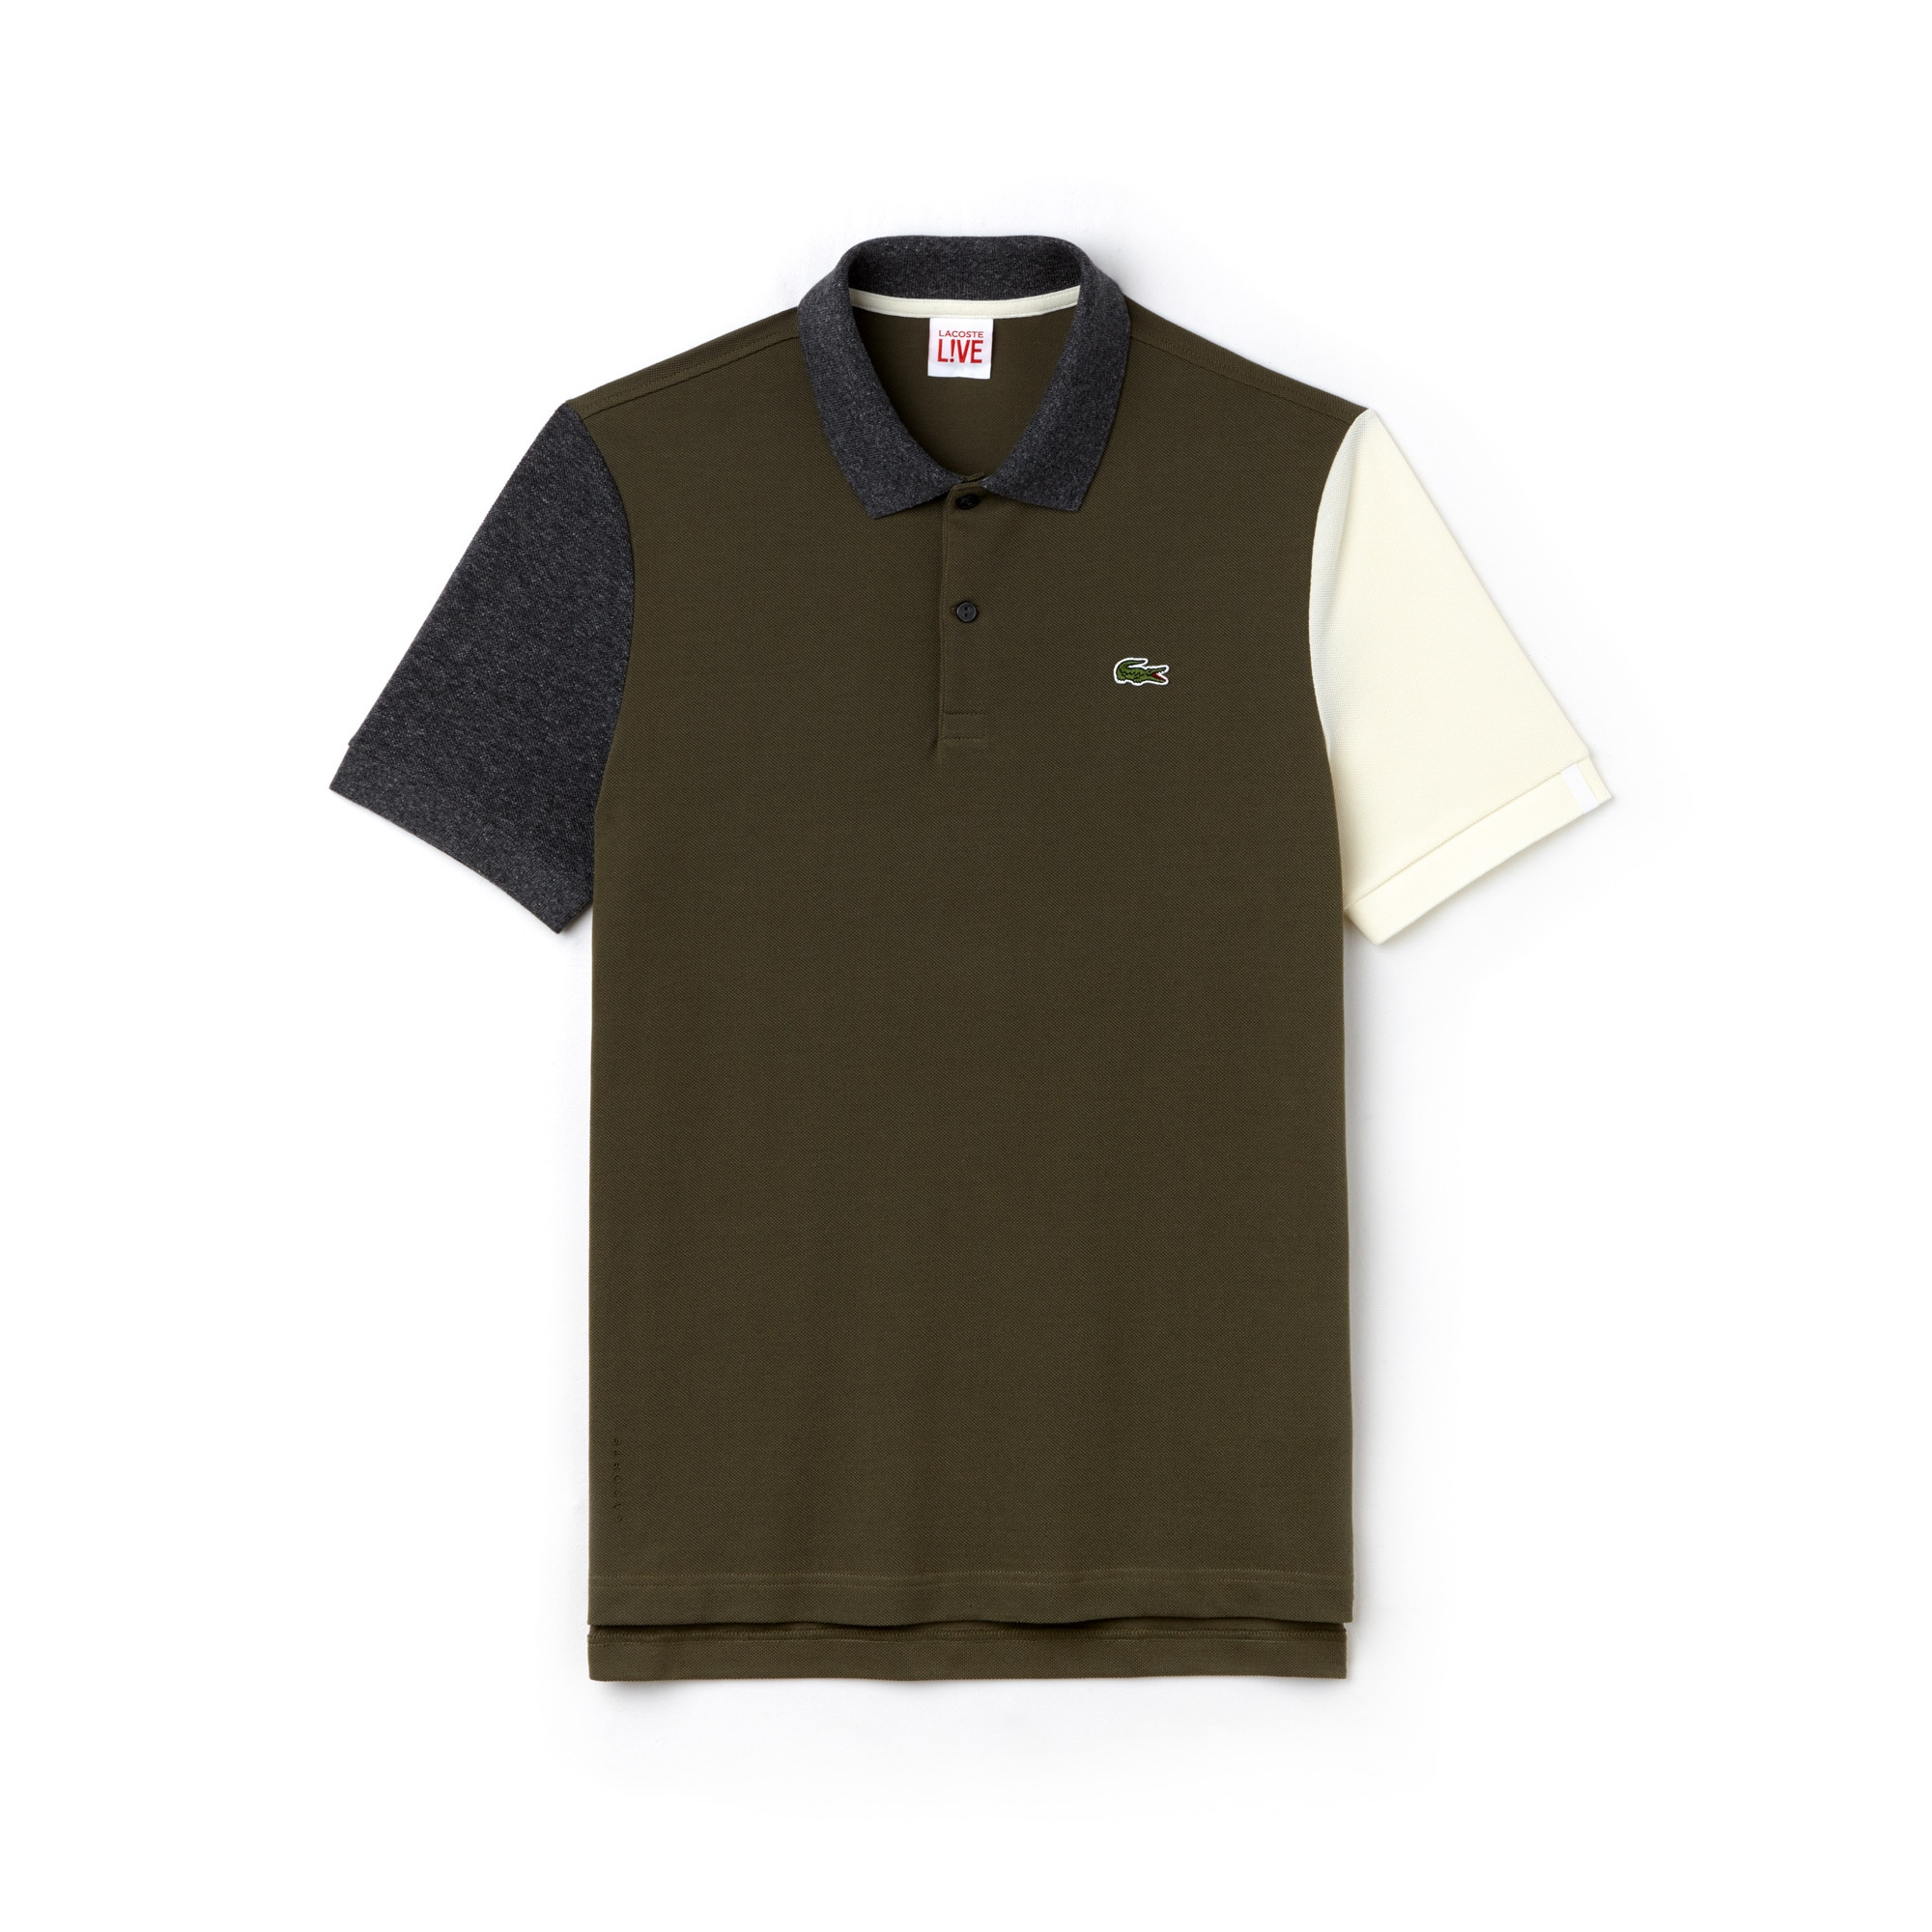 Men's Lacoste LIVE Slim Fit Colourblock Cotton Petit Piqué Polo